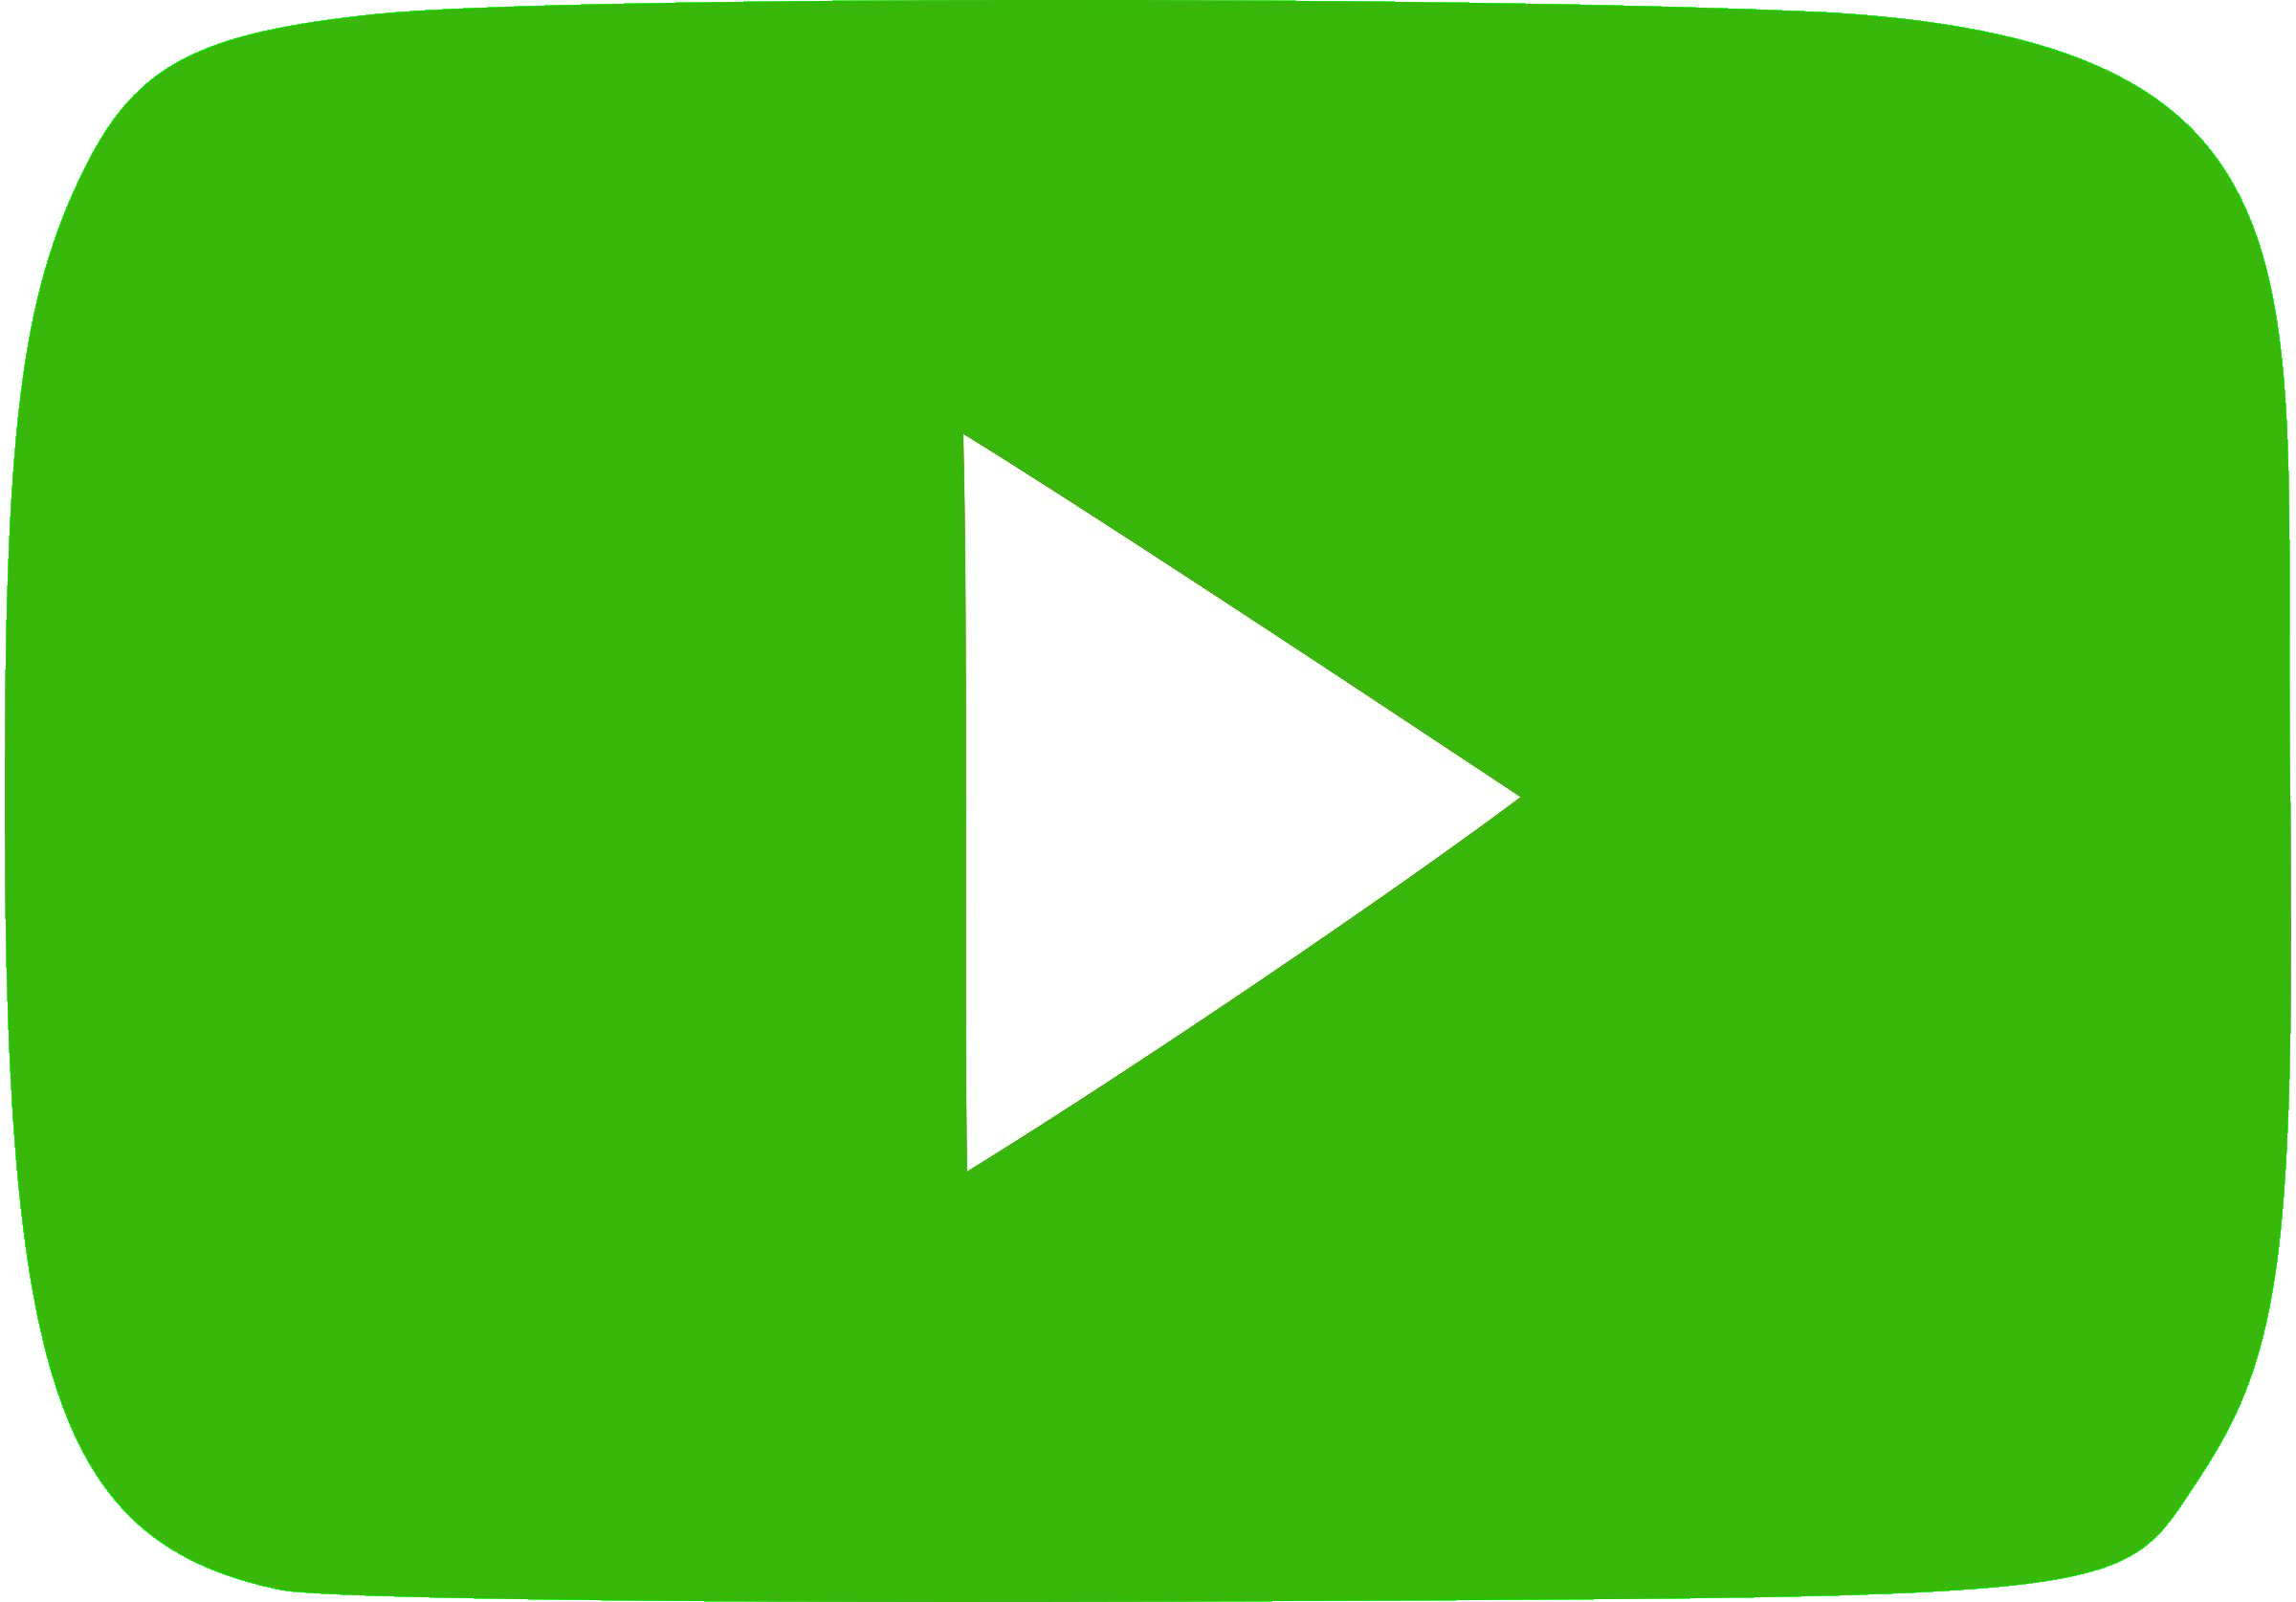 Play Button Png Youtube And Video Play Button Icon Free Download Free Transparent Png Logos Performance Art Play Button Button Image